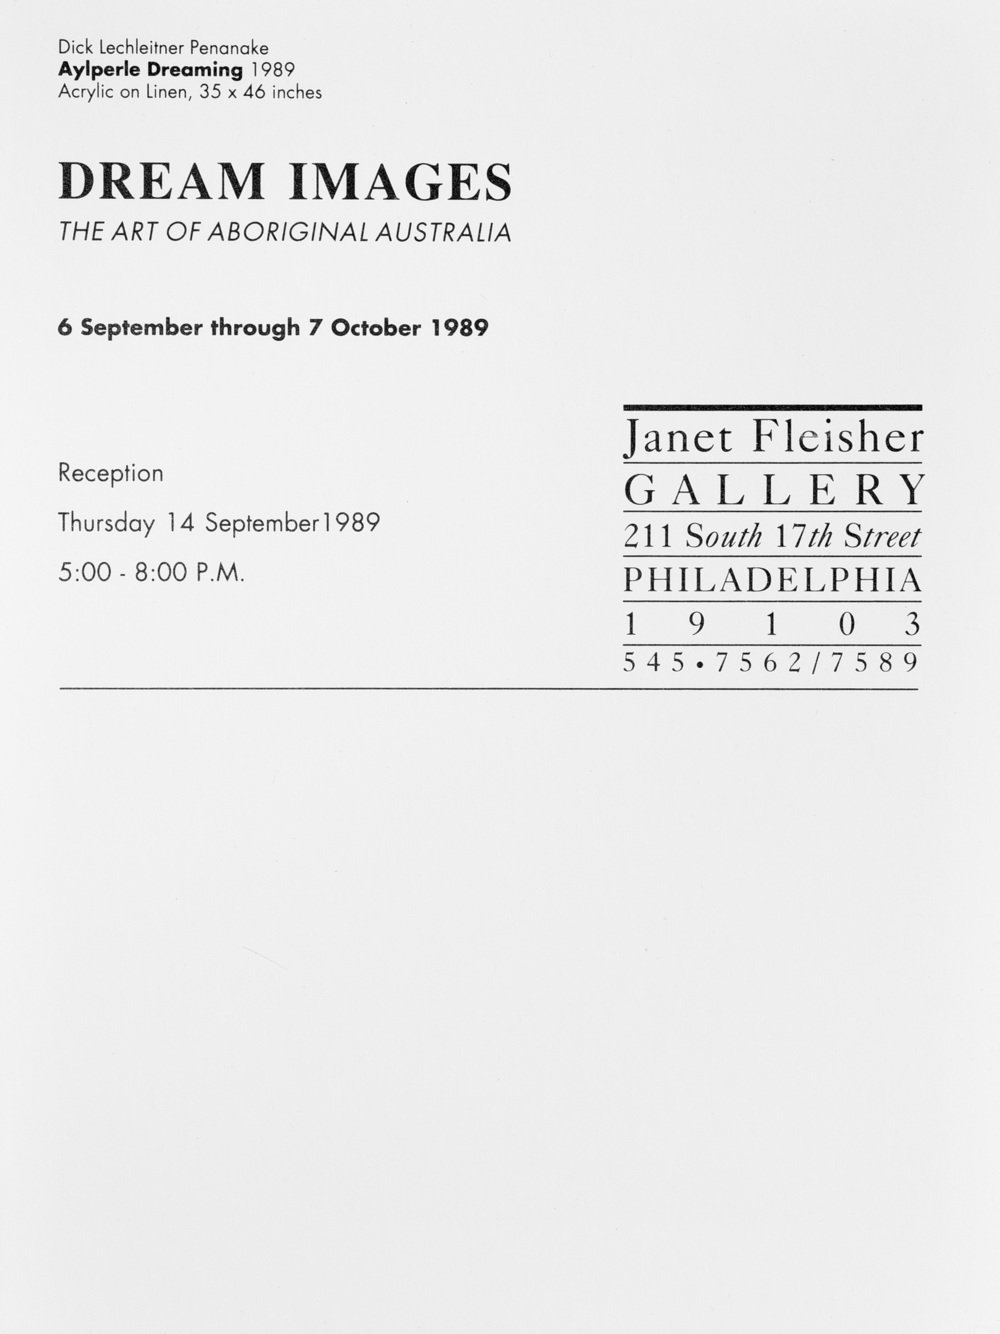 1989 09 dream images 1 1000 xxx q85